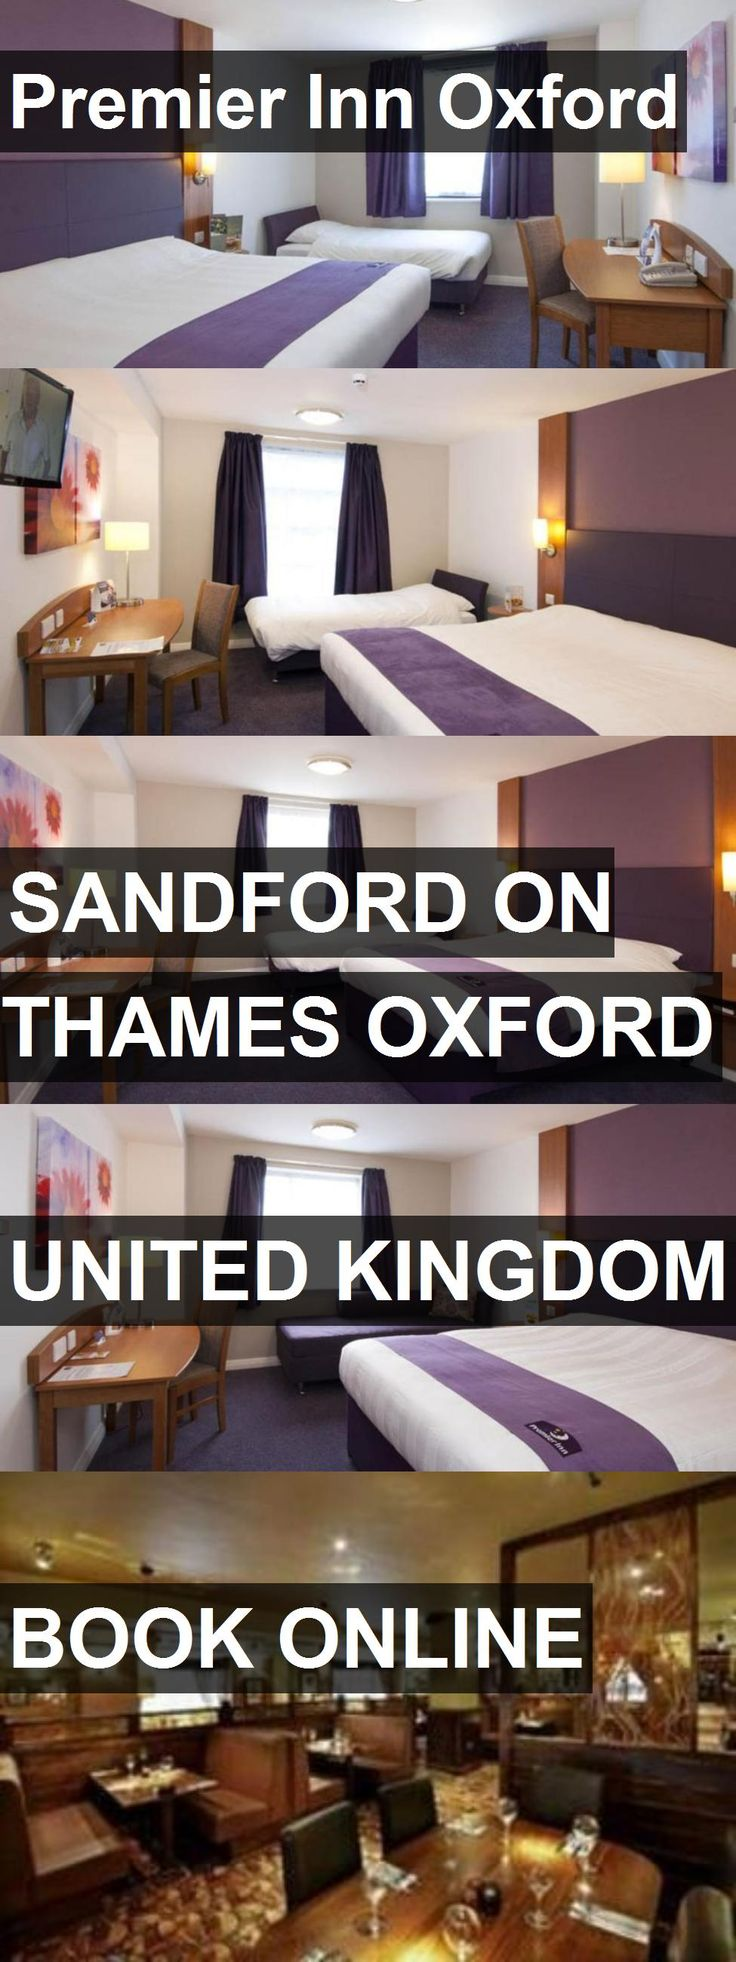 Hotel Premier Inn Oxford in Sandford on thames Oxford, United Kingdom. For more information, photos, reviews and best prices please follow the link. #UnitedKingdom #SandfordonthamesOxford #PremierInnOxford #hotel #travel #vacation